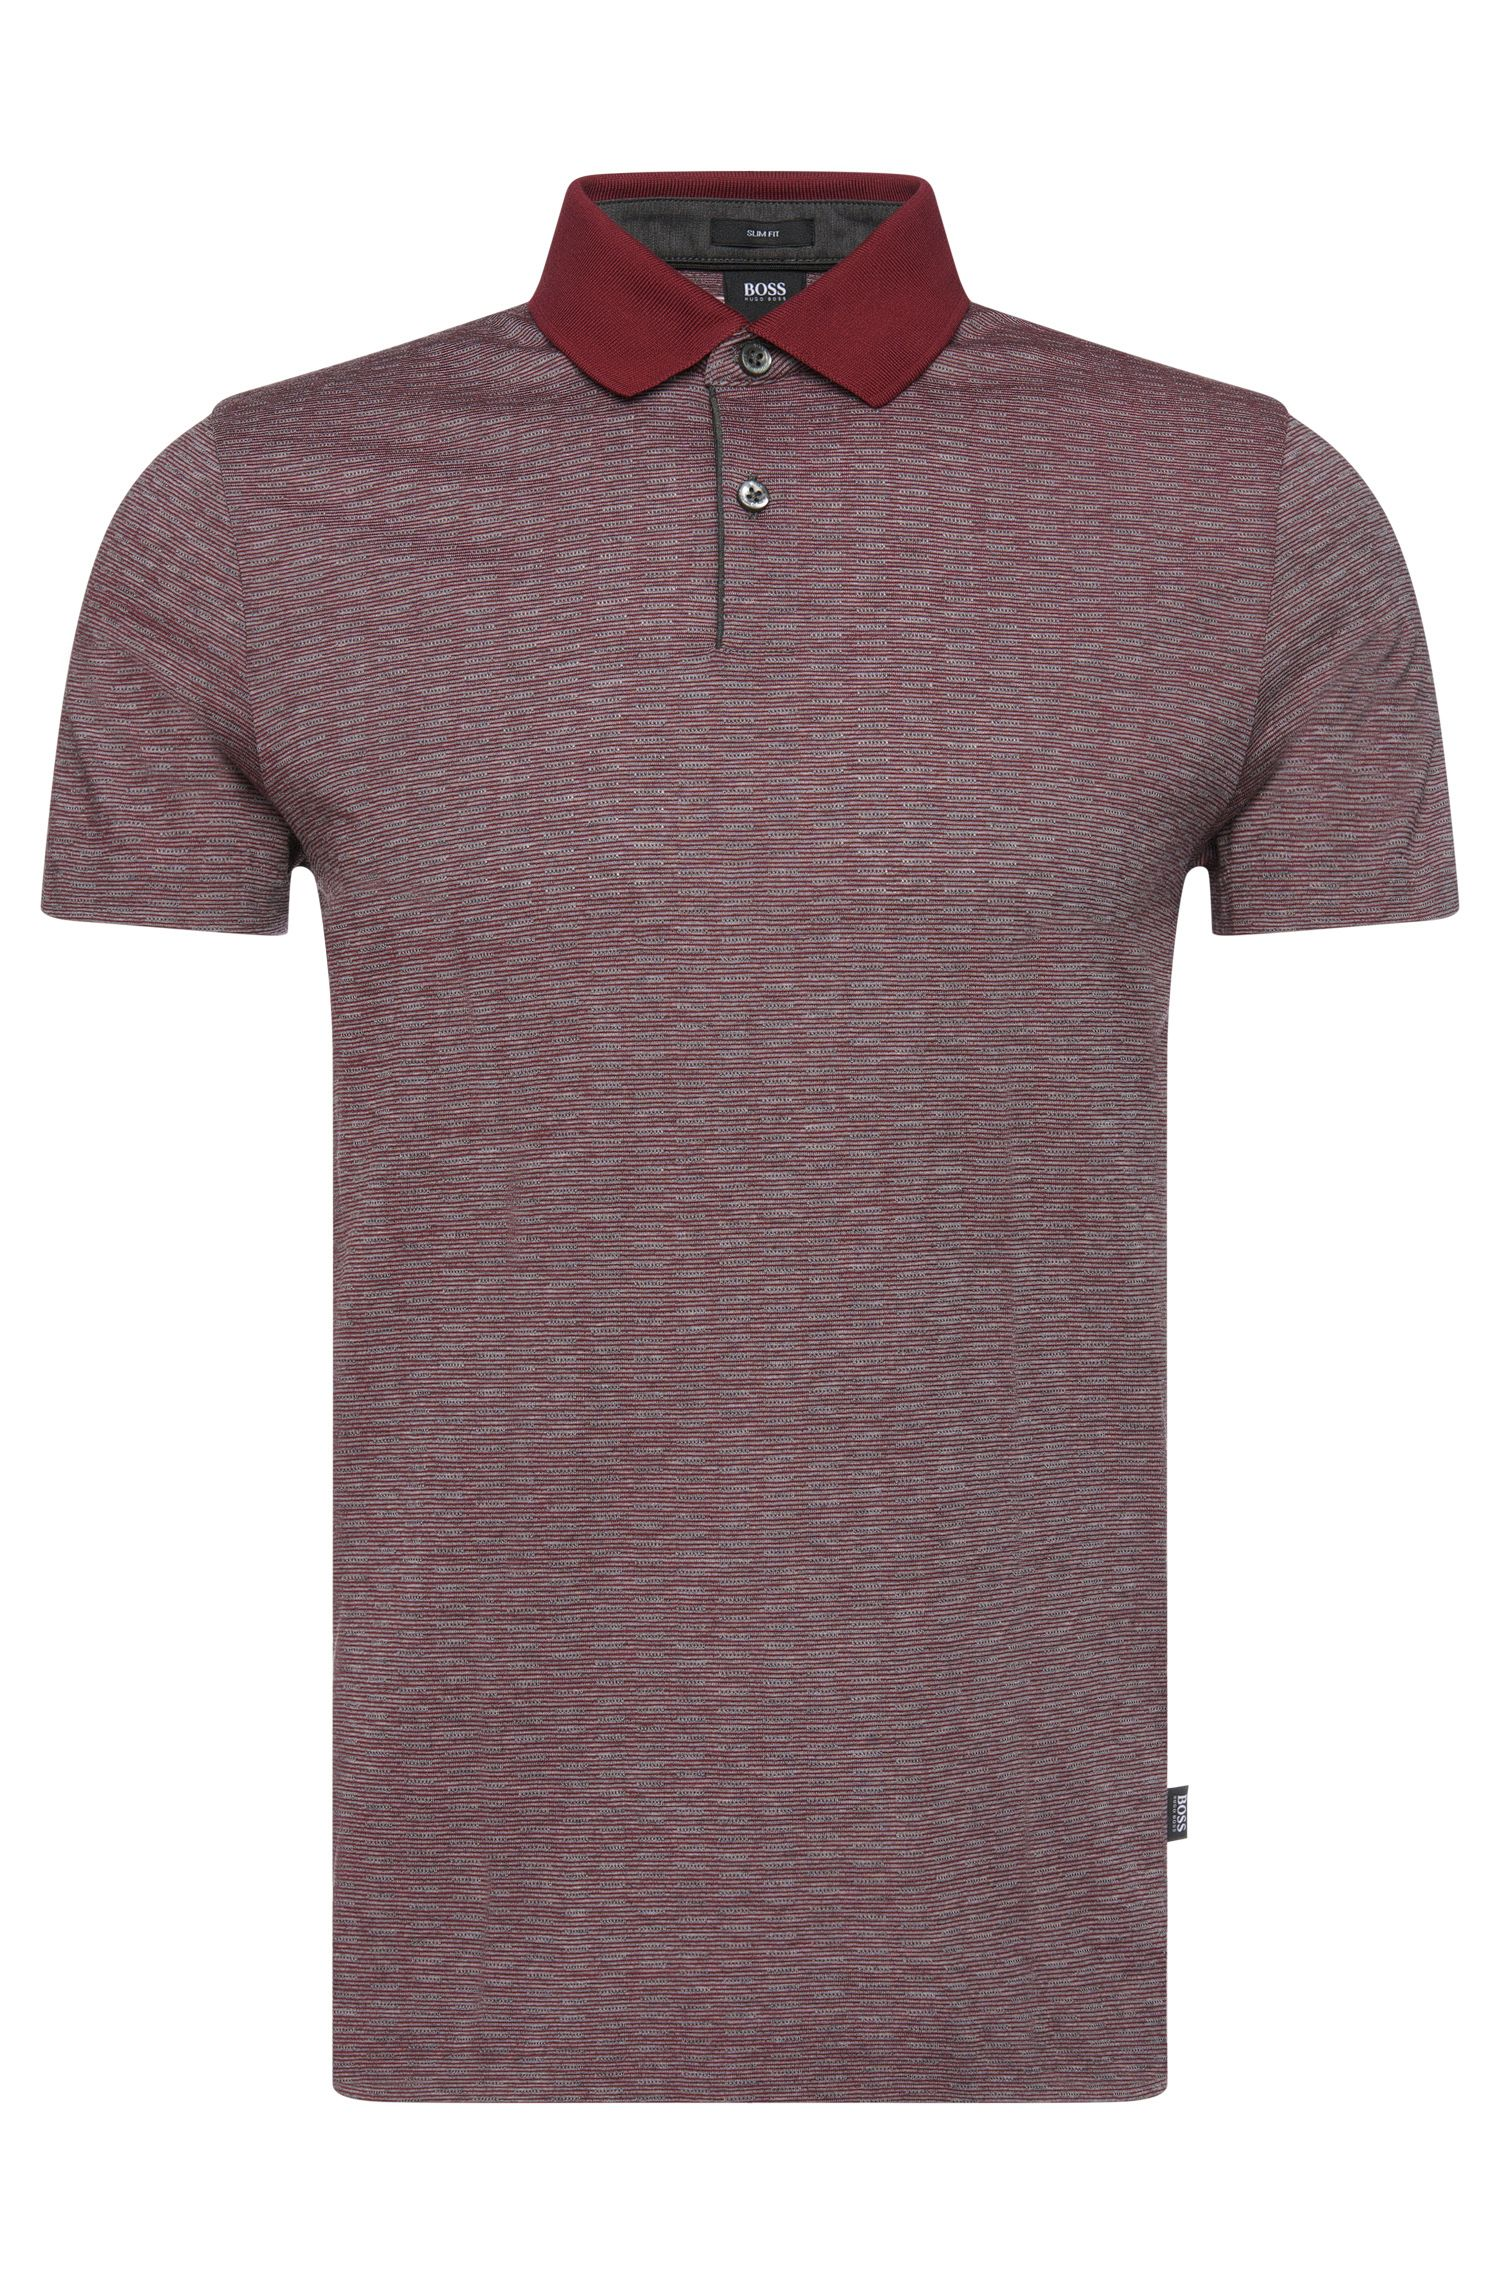 'Parks' | Slim Fit, Wool Cotton Finestripe Polo Shirt